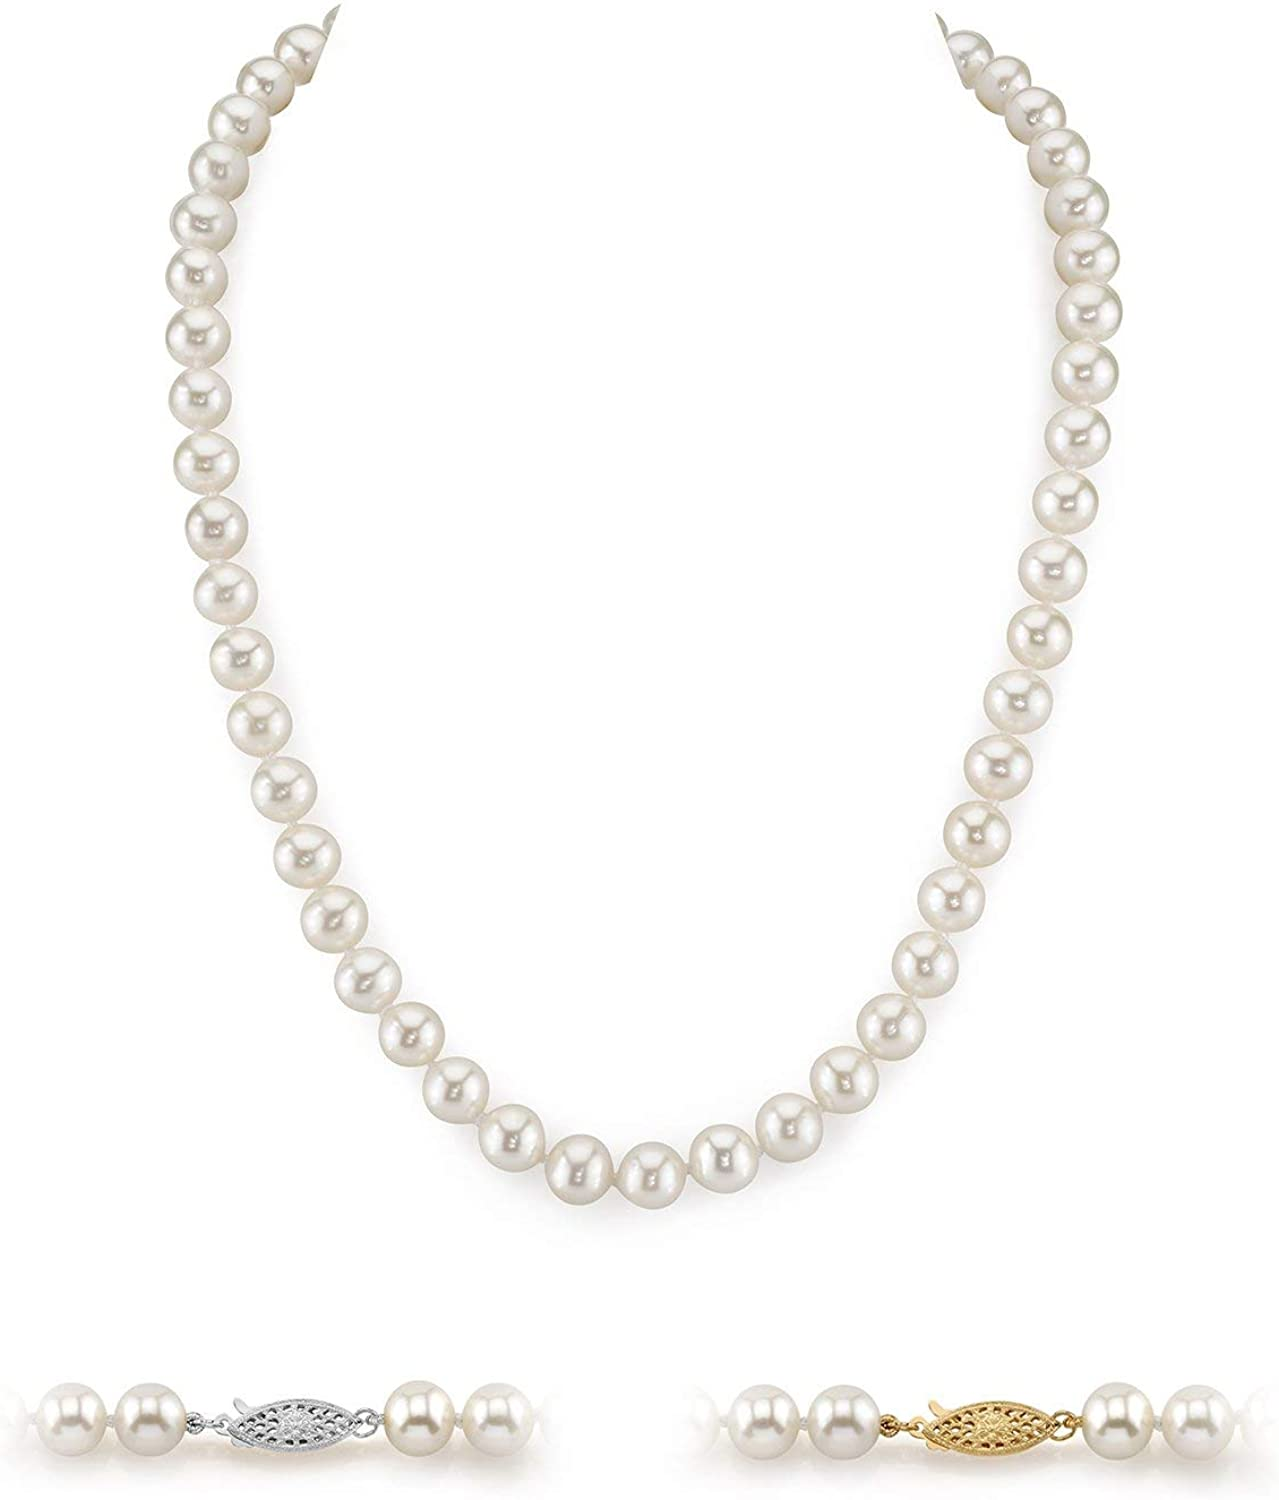 THE PEARL SOURCE 14K Gold AAAA Quality White Freshwater Cultured Pearl Necklace for Women in 18